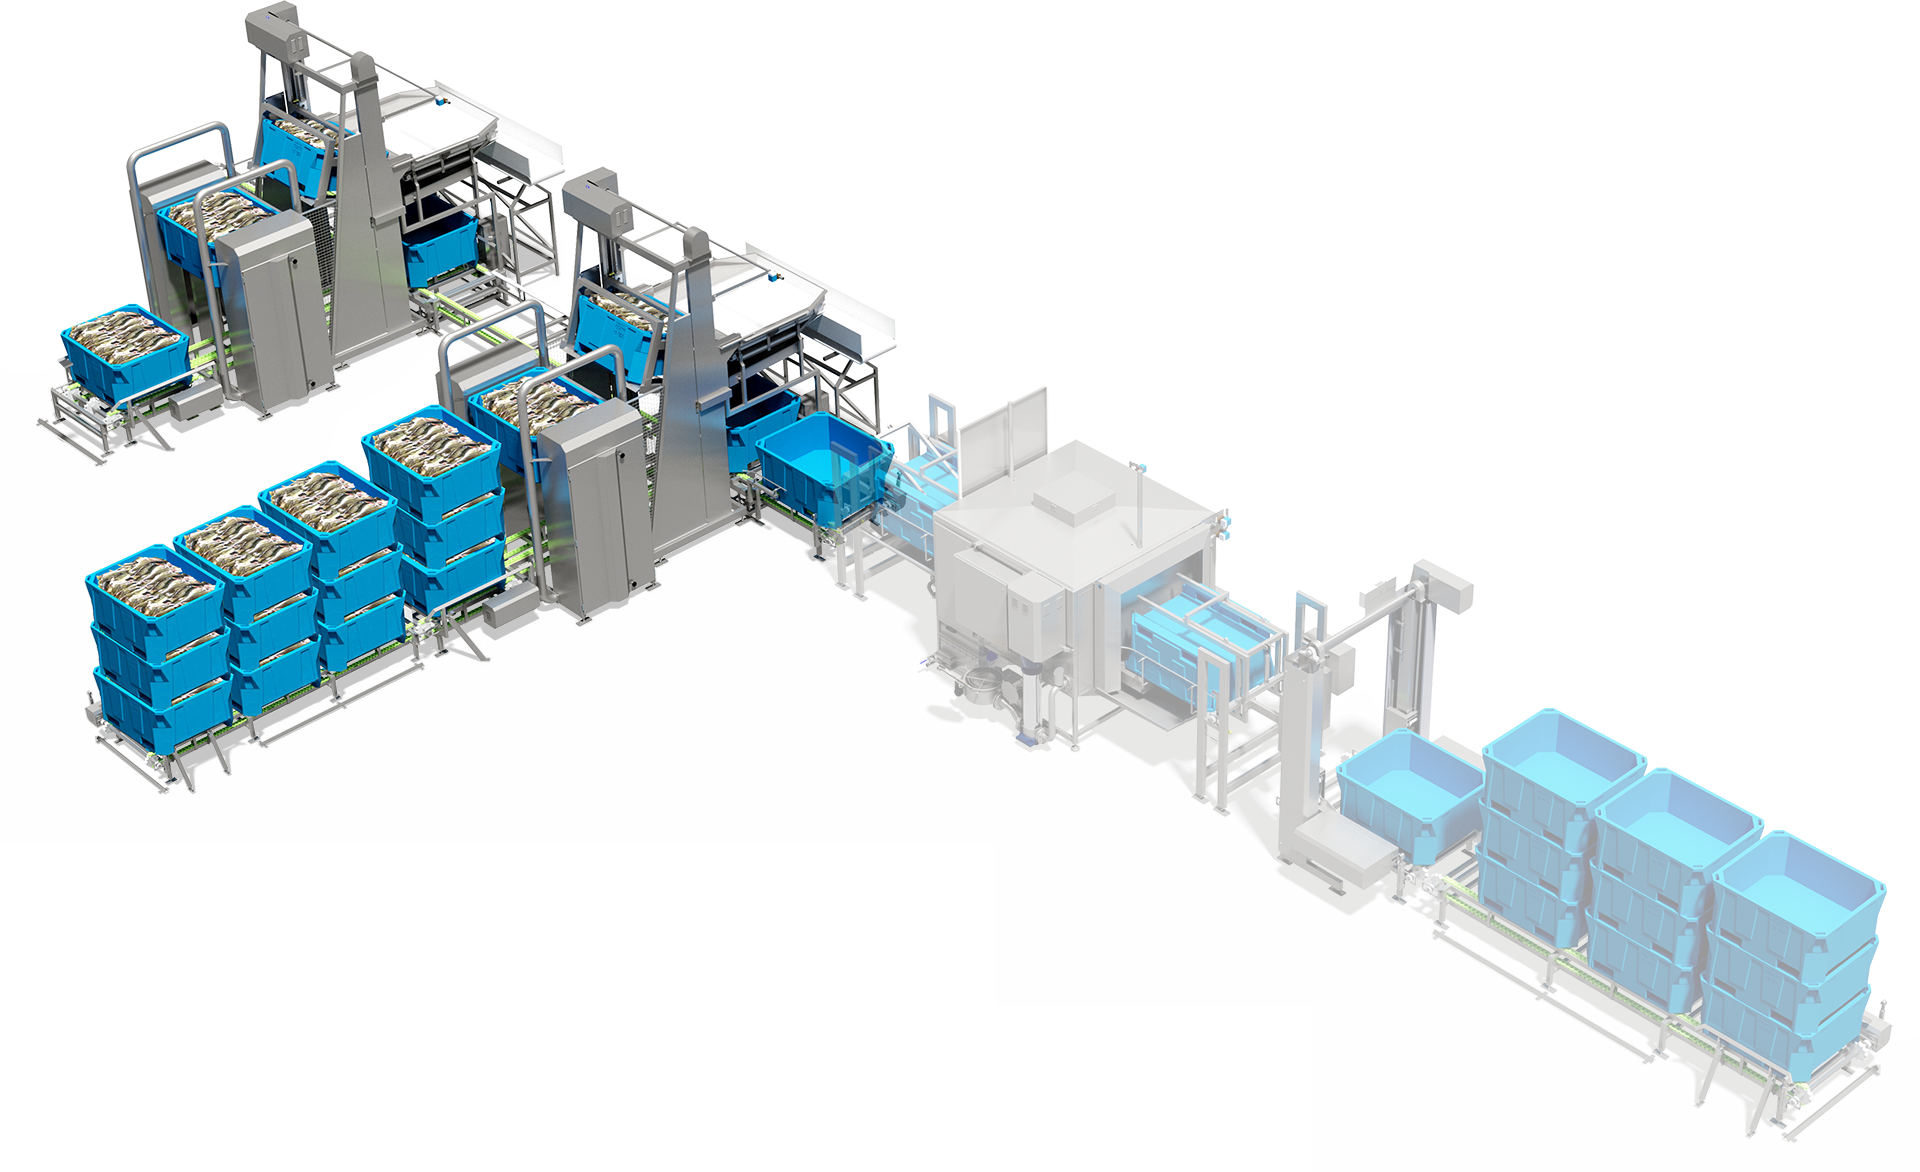 Automatic Tub Handling and Infeed System